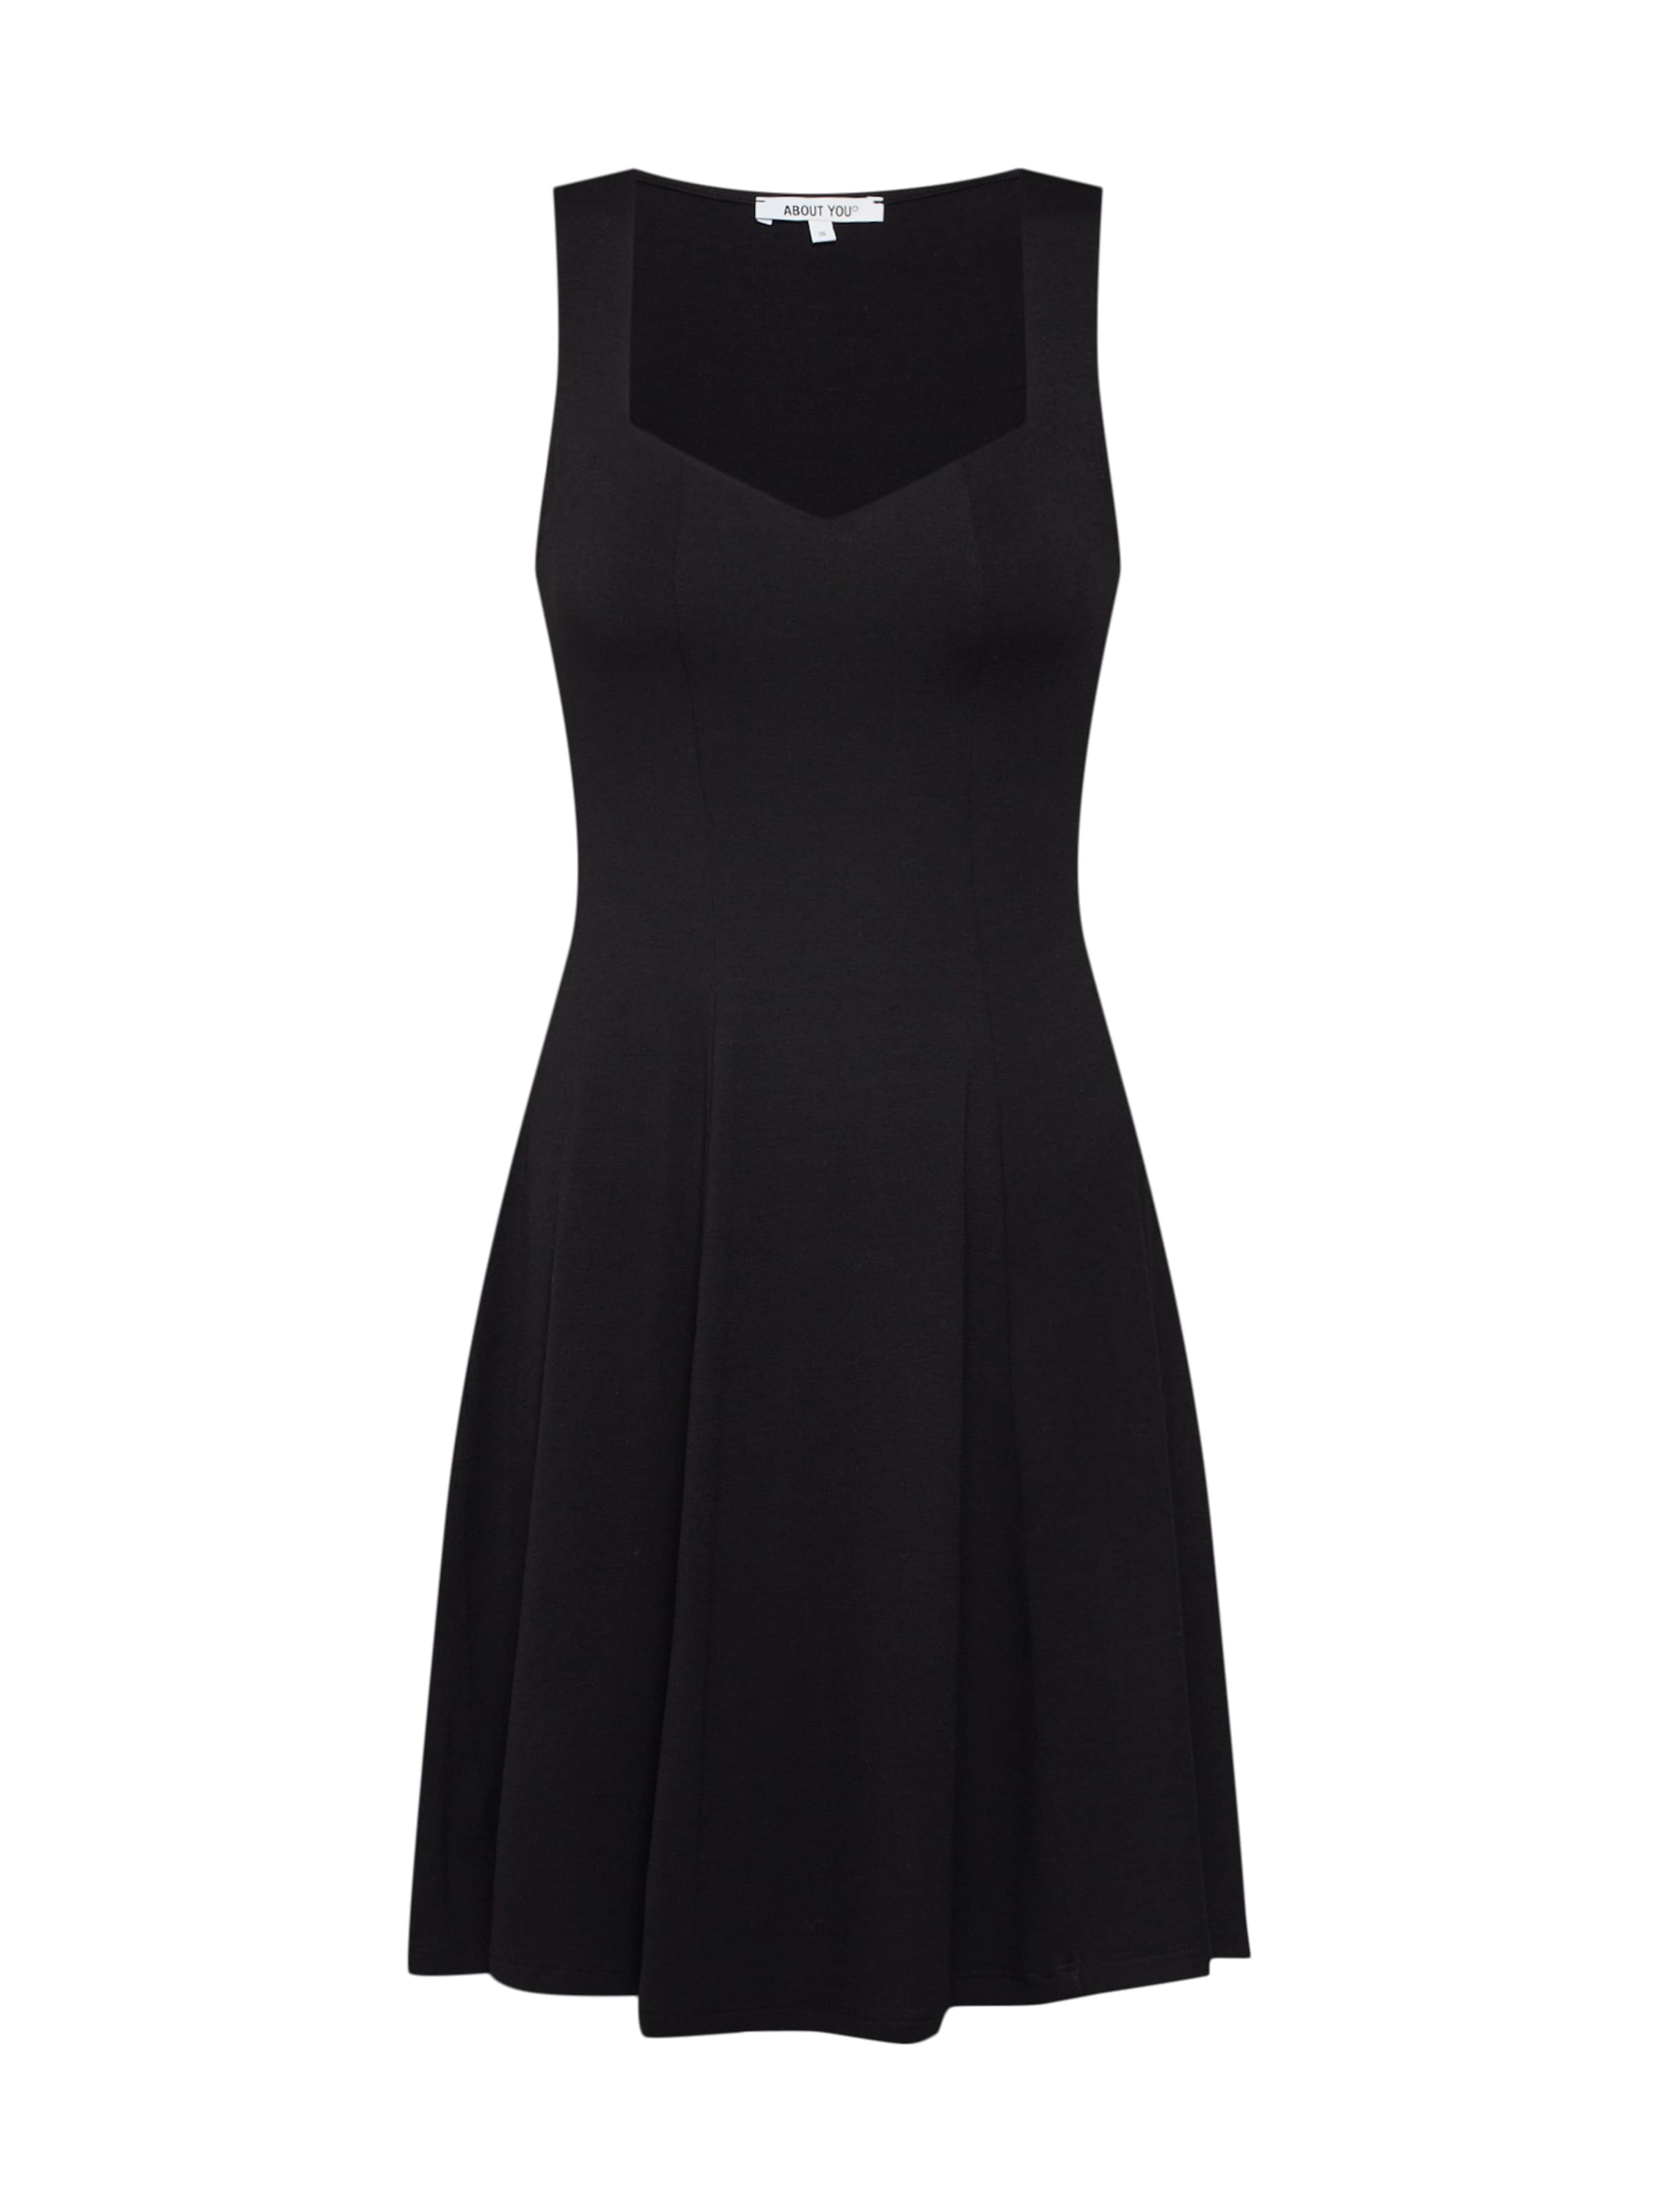 'floria' About Robe You En Noir 08nPkOwX